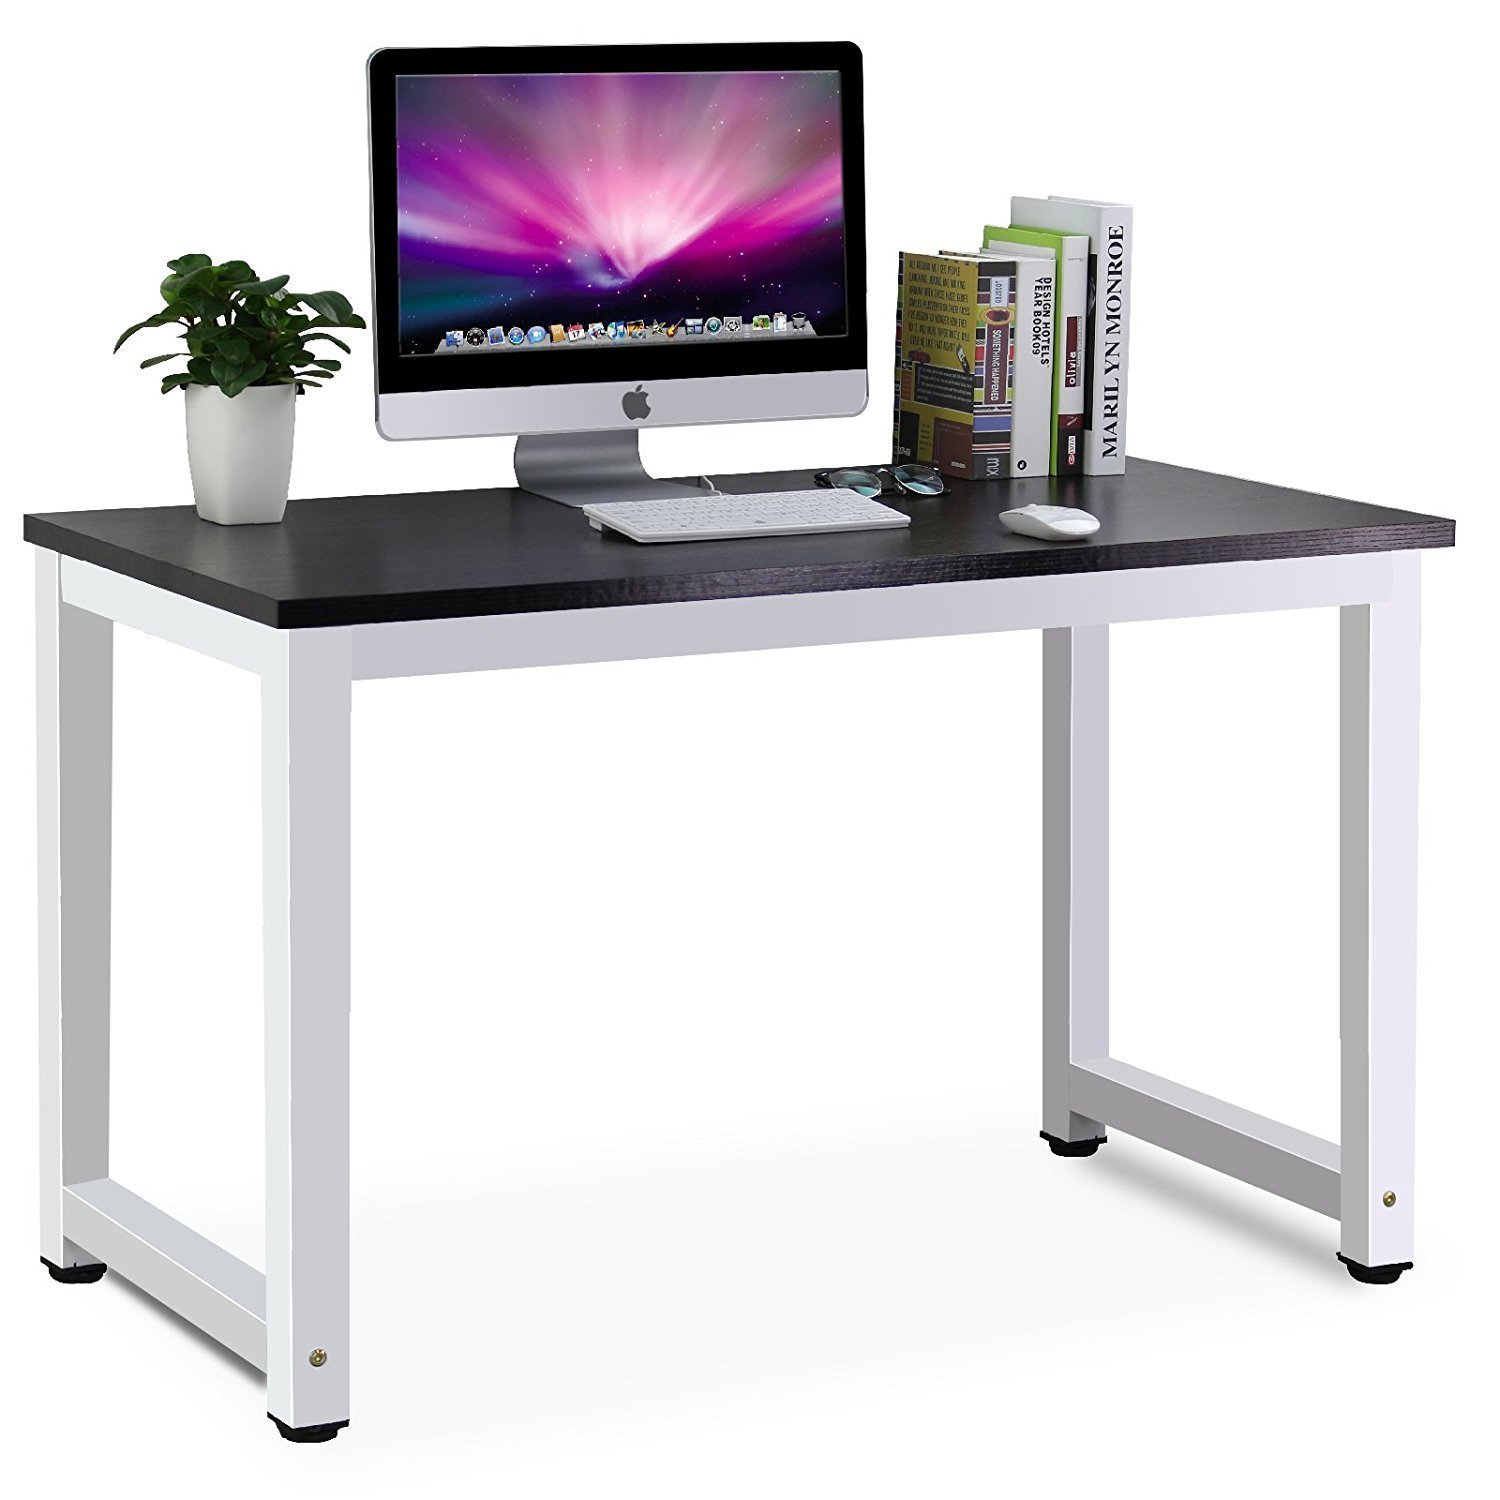 amazoncom tribesigns modern simple style computer desk pc laptop study table workstation for home office black office products